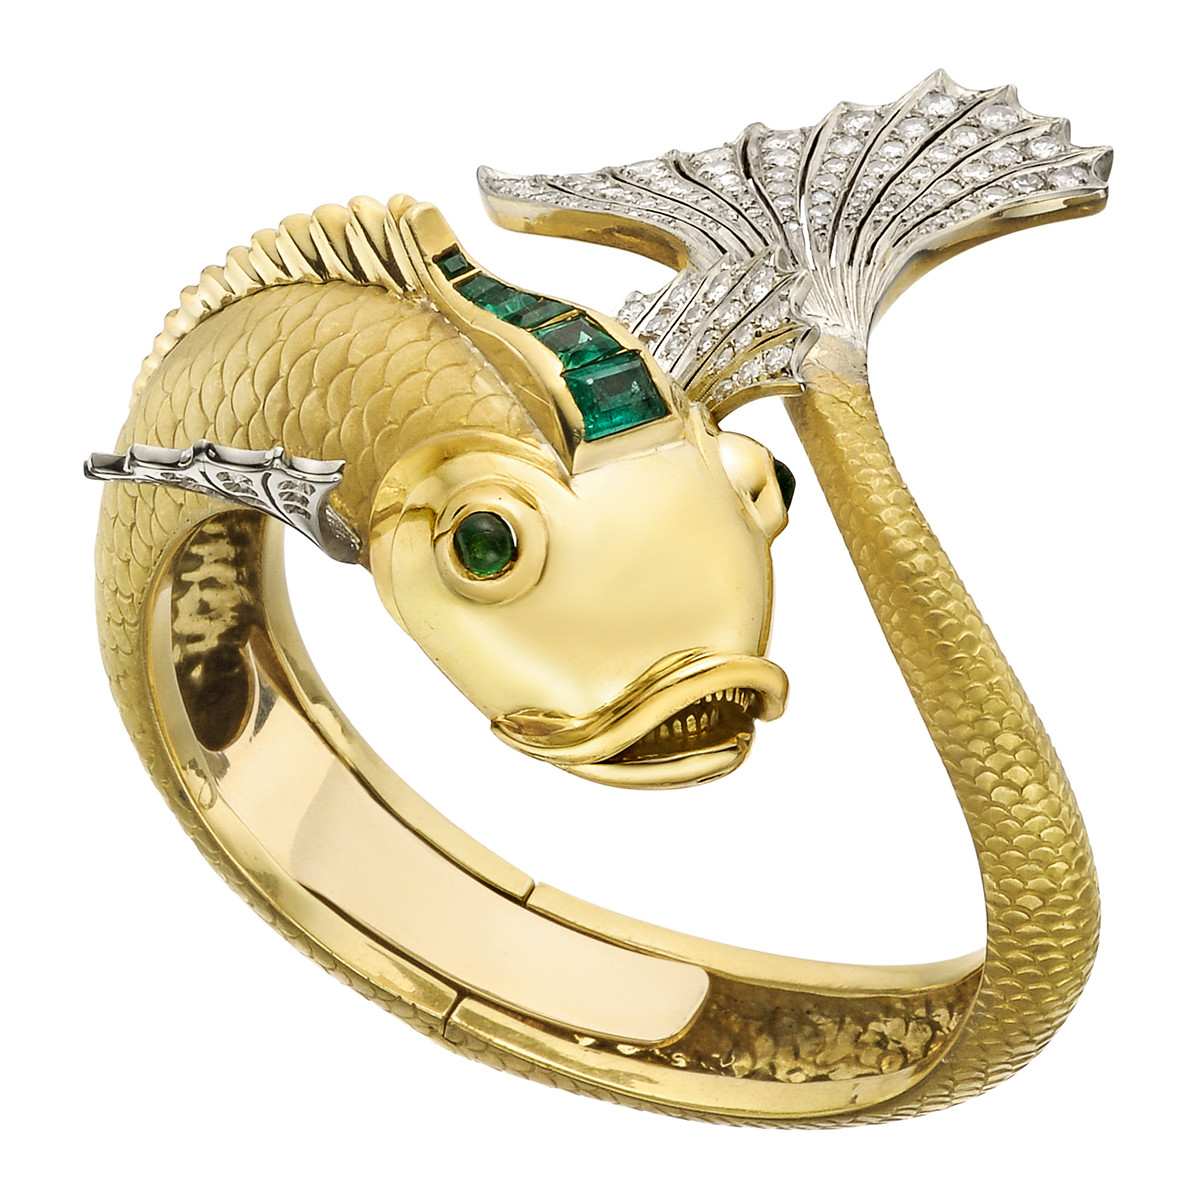 18k Gold, Diamond & Emerald Koi Fish Cuff